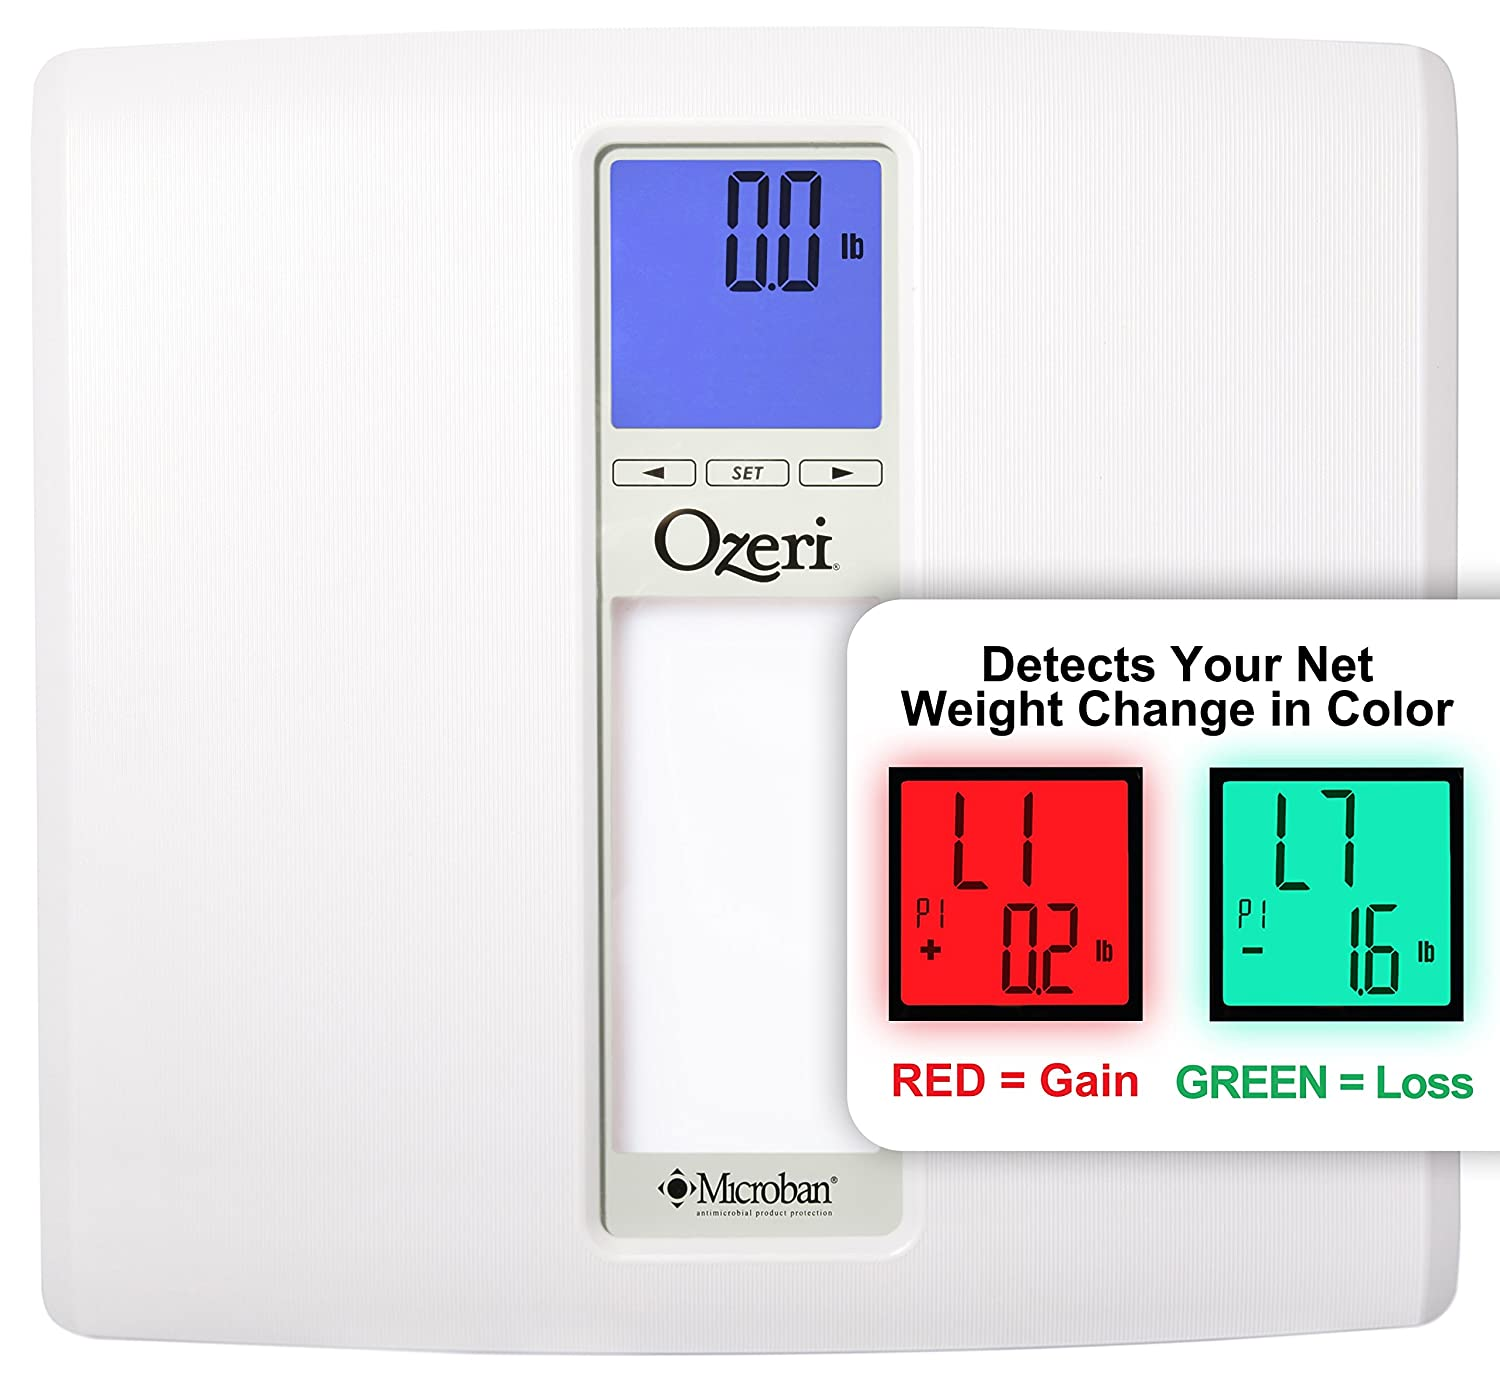 Ozeri ZB20 WeightMaster II 440 lbs Digital Bath Scale with BMI and Weight Change Detection, White ZB20-W